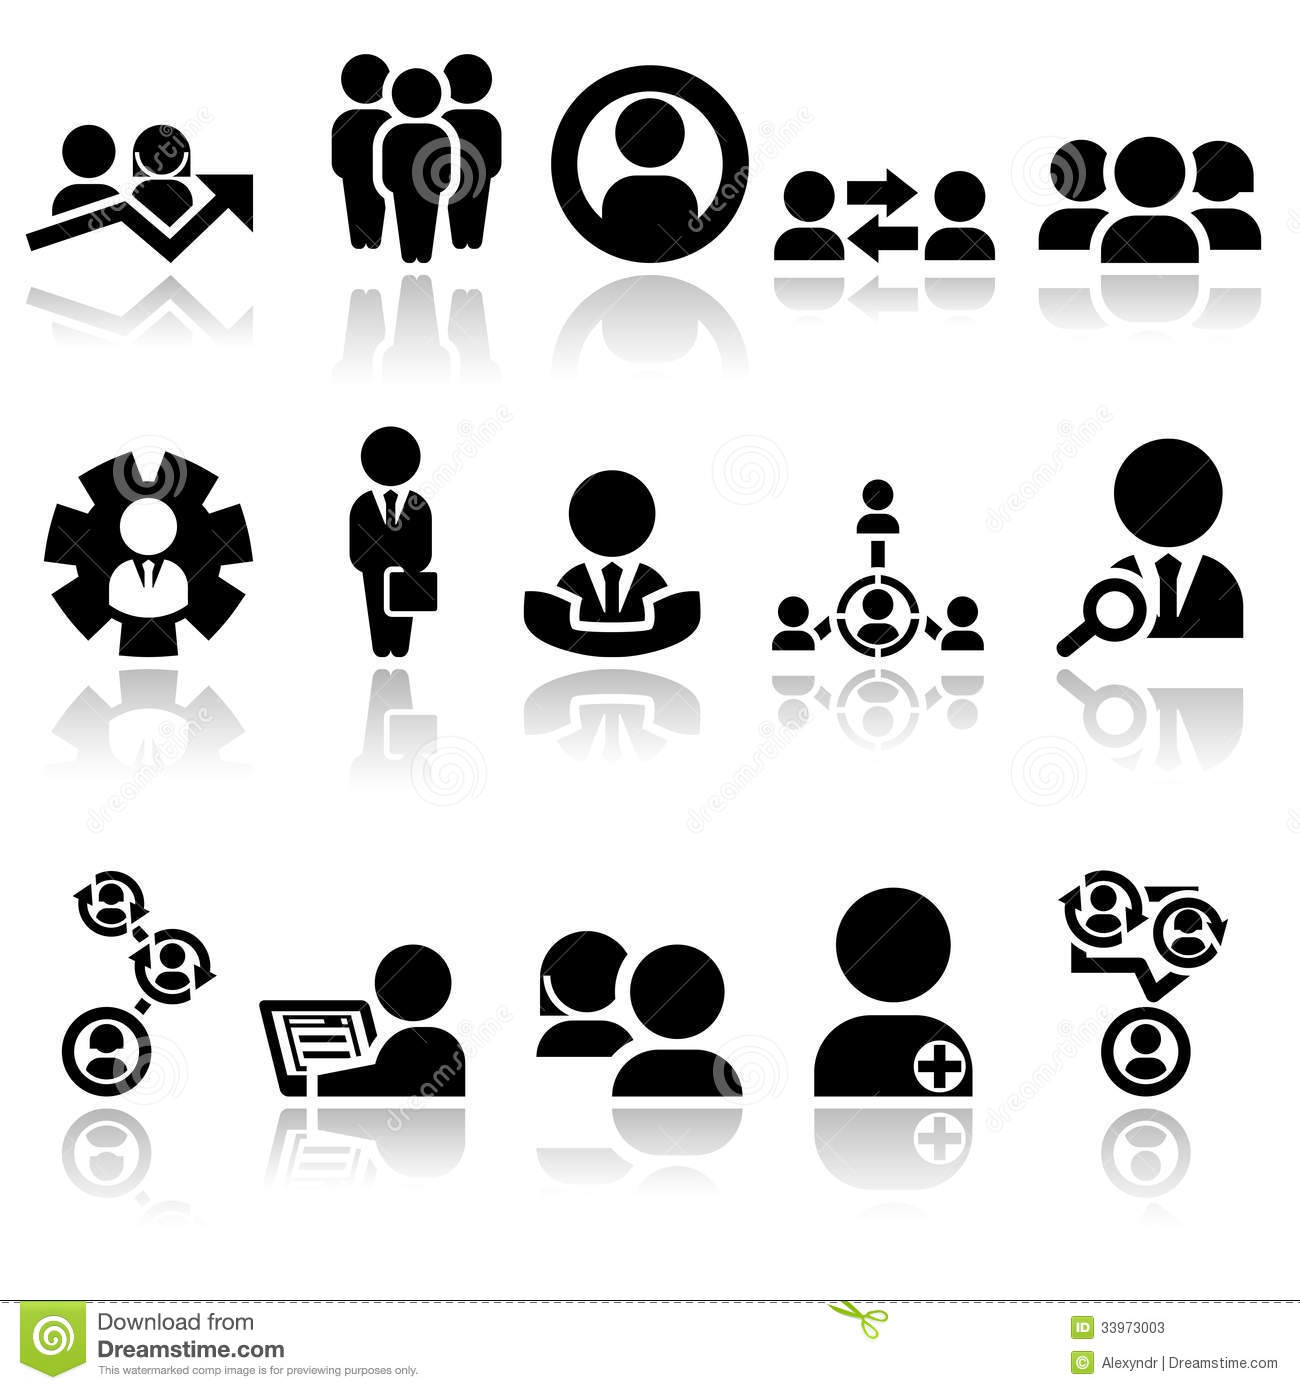 Business Man Vector Icons Set EPS 10 Stock Photos - Image: 33973003